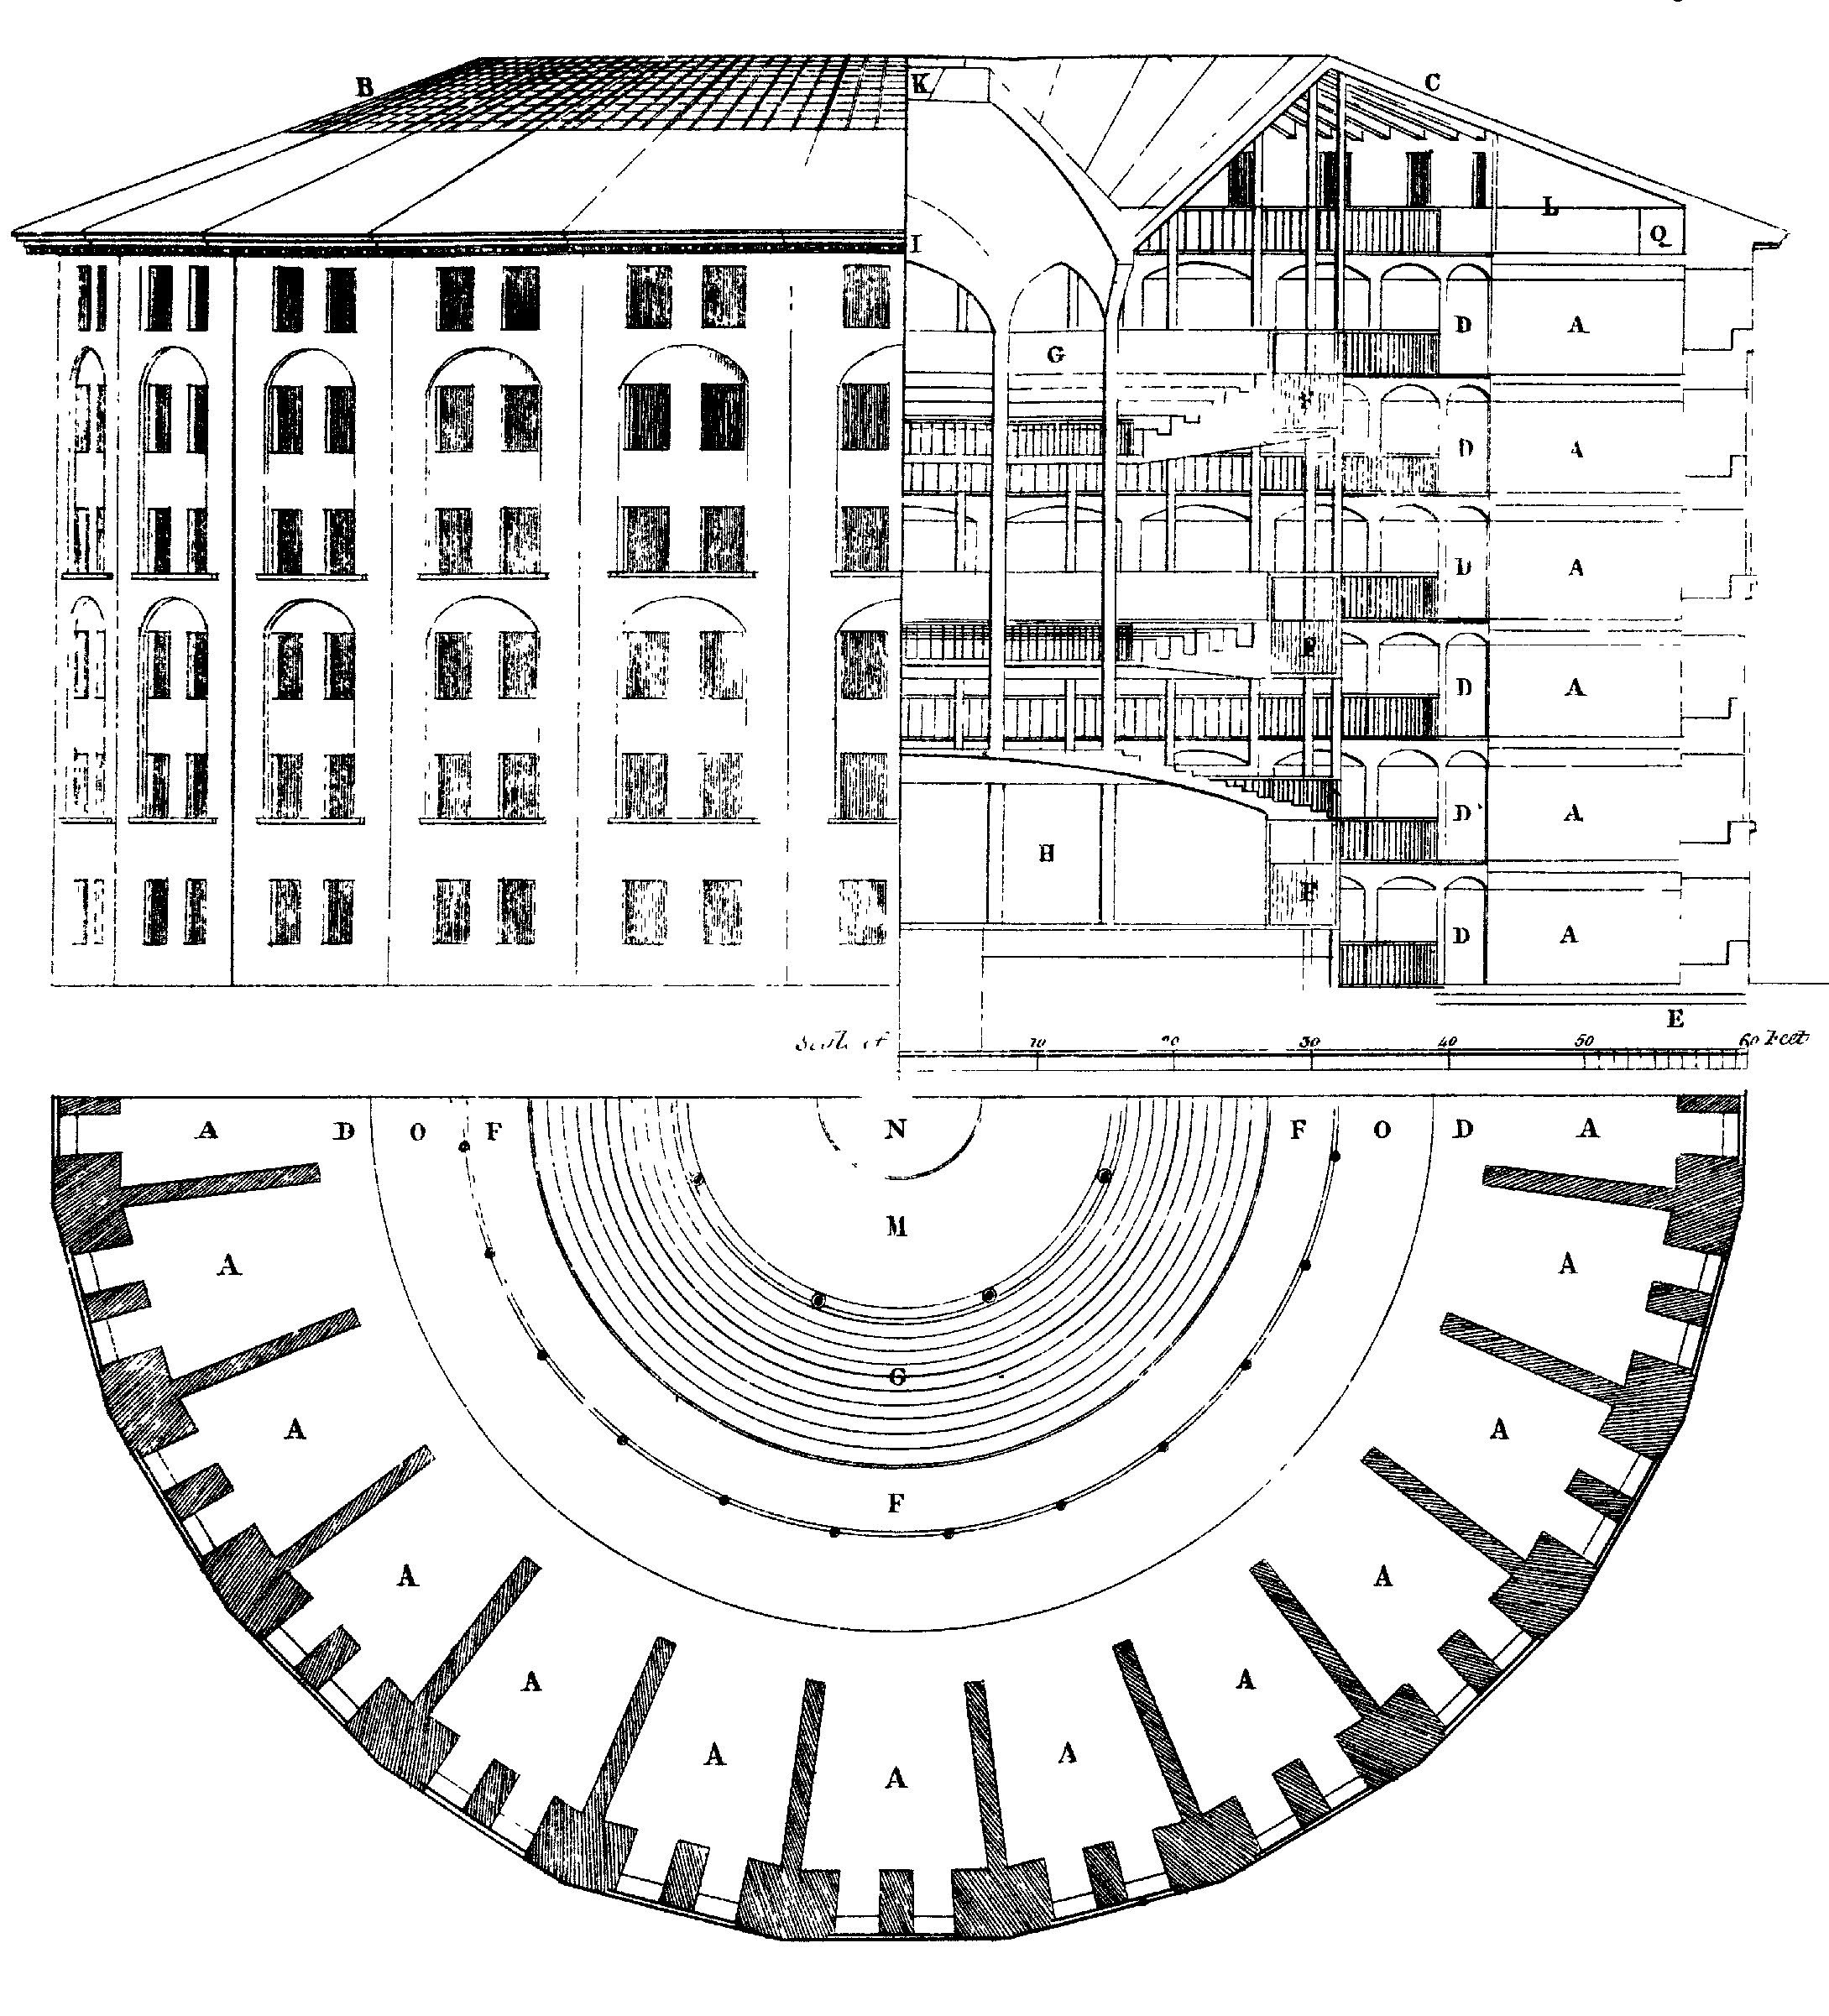 Plan of the Panopticon, The works of Jeremy Bentham vol. IV, 172-3, pub. 1843 (originally 1791)